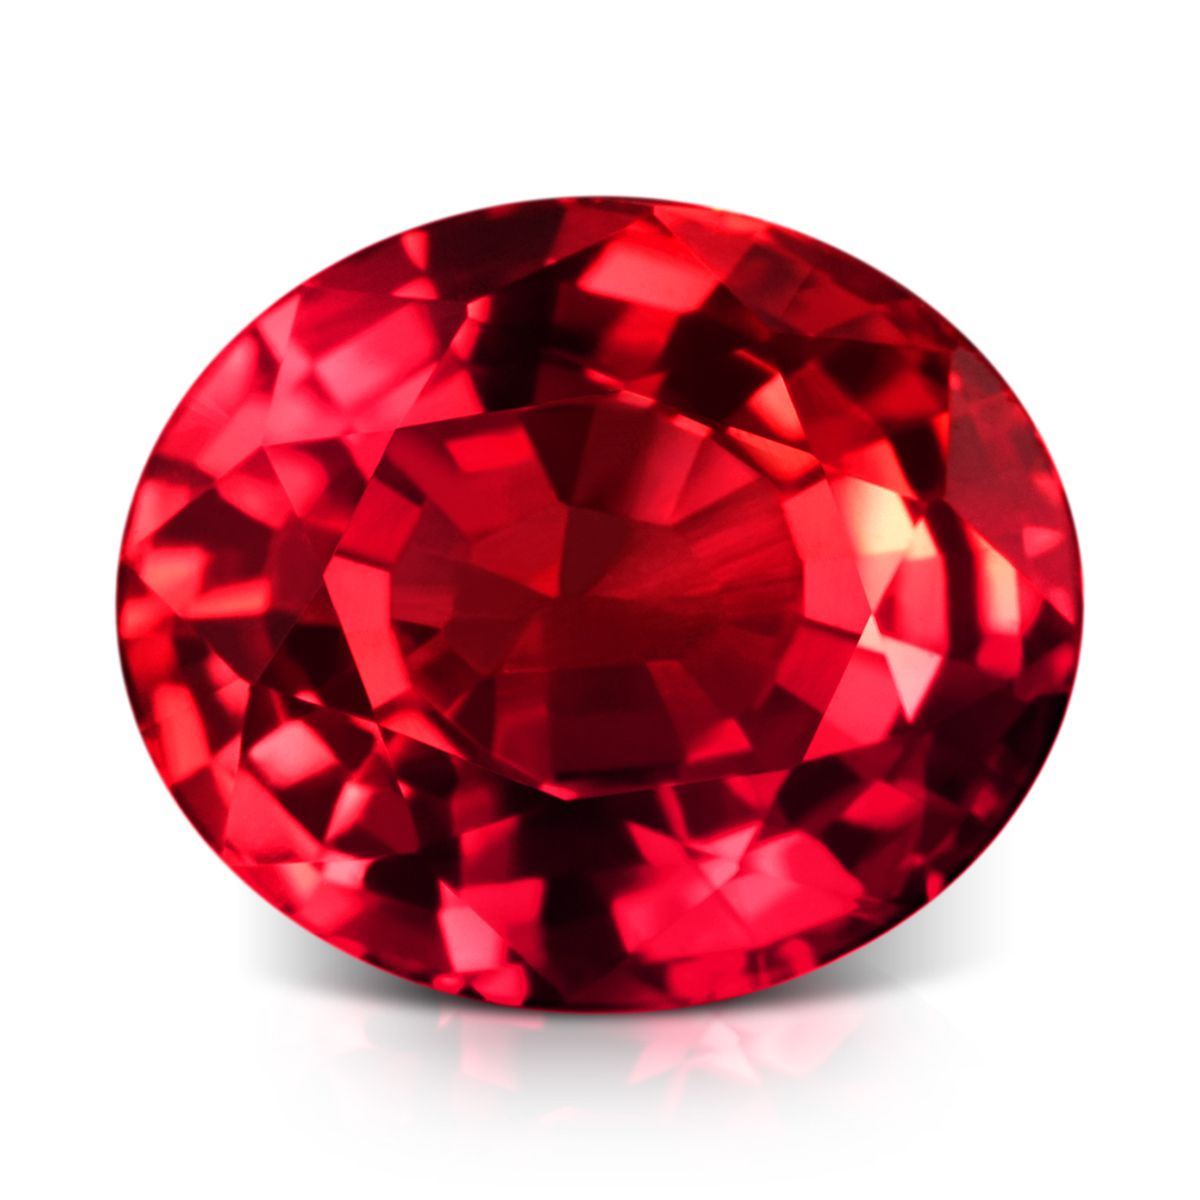 Gemstones for Professional Success.. Know More: https://www.behance.net/gallery/34761021/Gemstones-for-Professional-Success